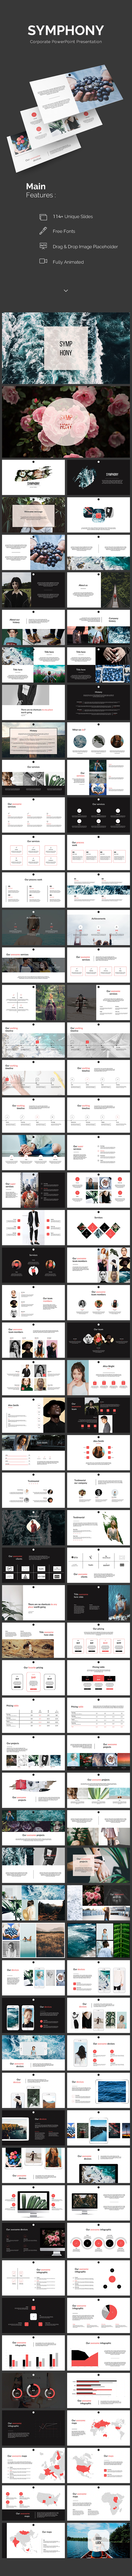 Symphony PowerPoint Template - PowerPoint Templates Presentation Templates